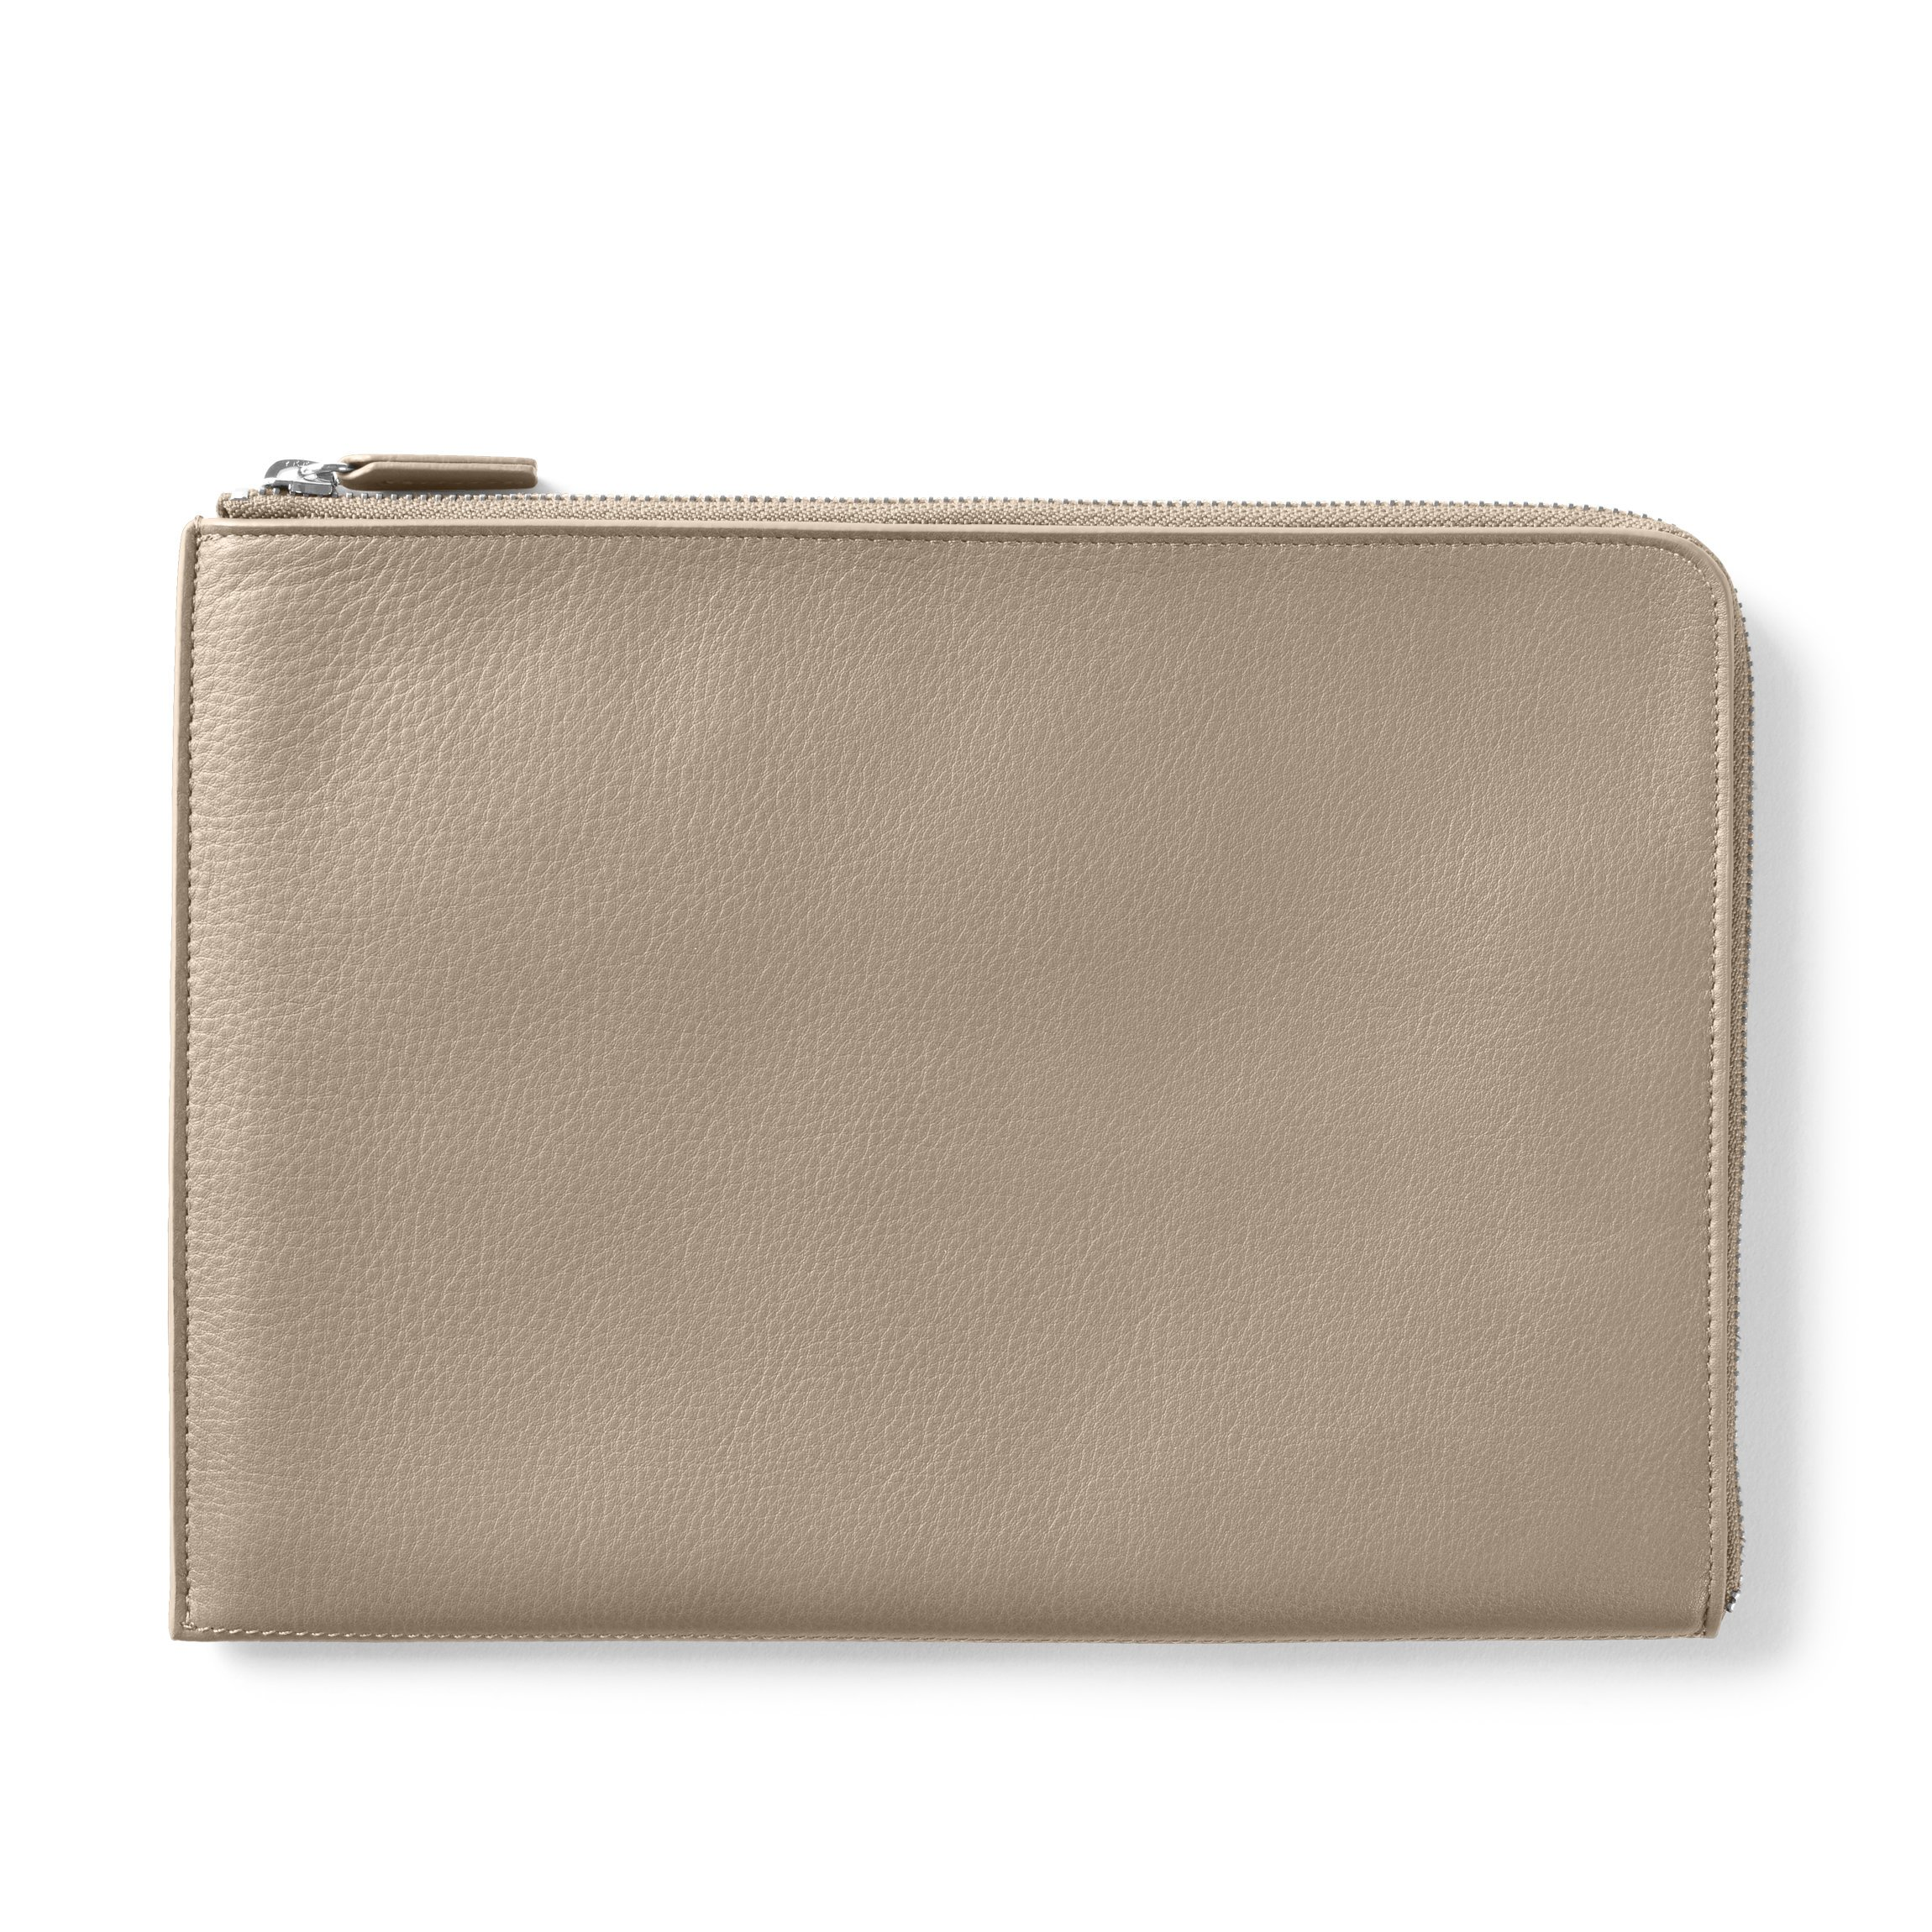 Zip Clutch - Full Grain Leather Leather - Ginger (gray)